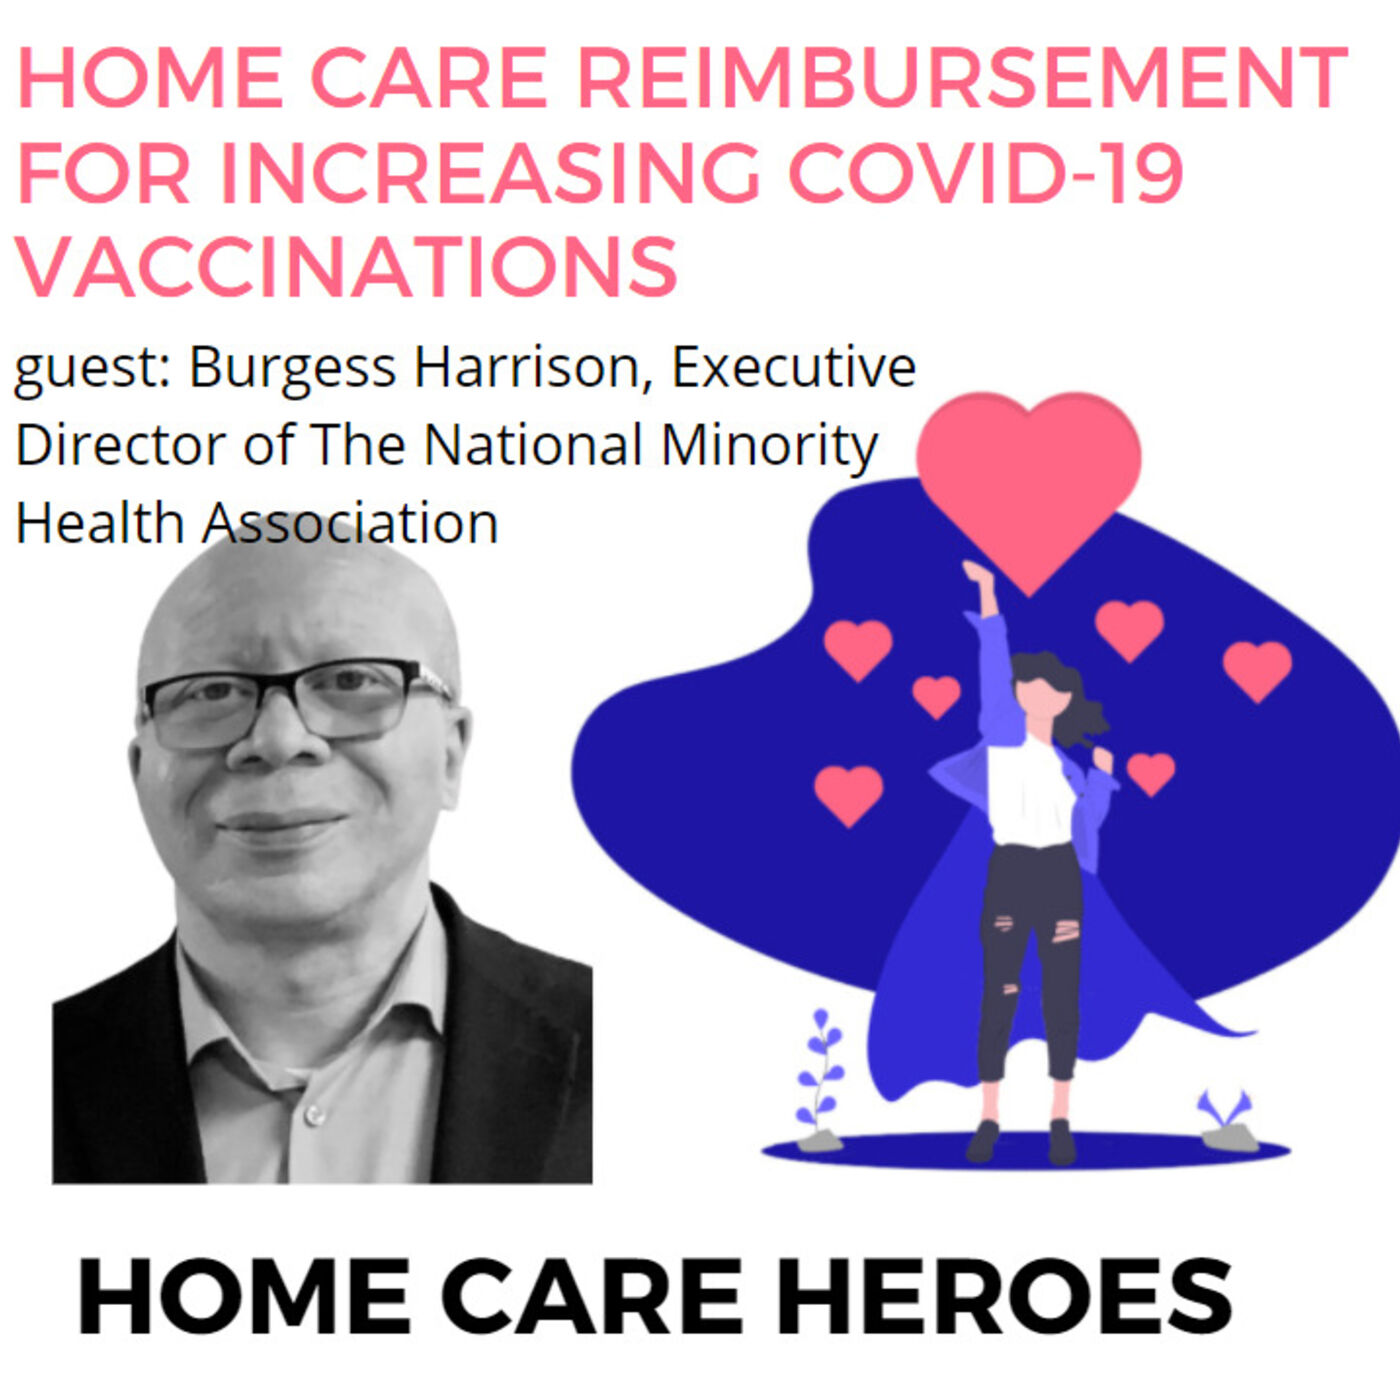 Home Care Reimbursement for increasing COVID-19 vaccinations with Burgess Harrison